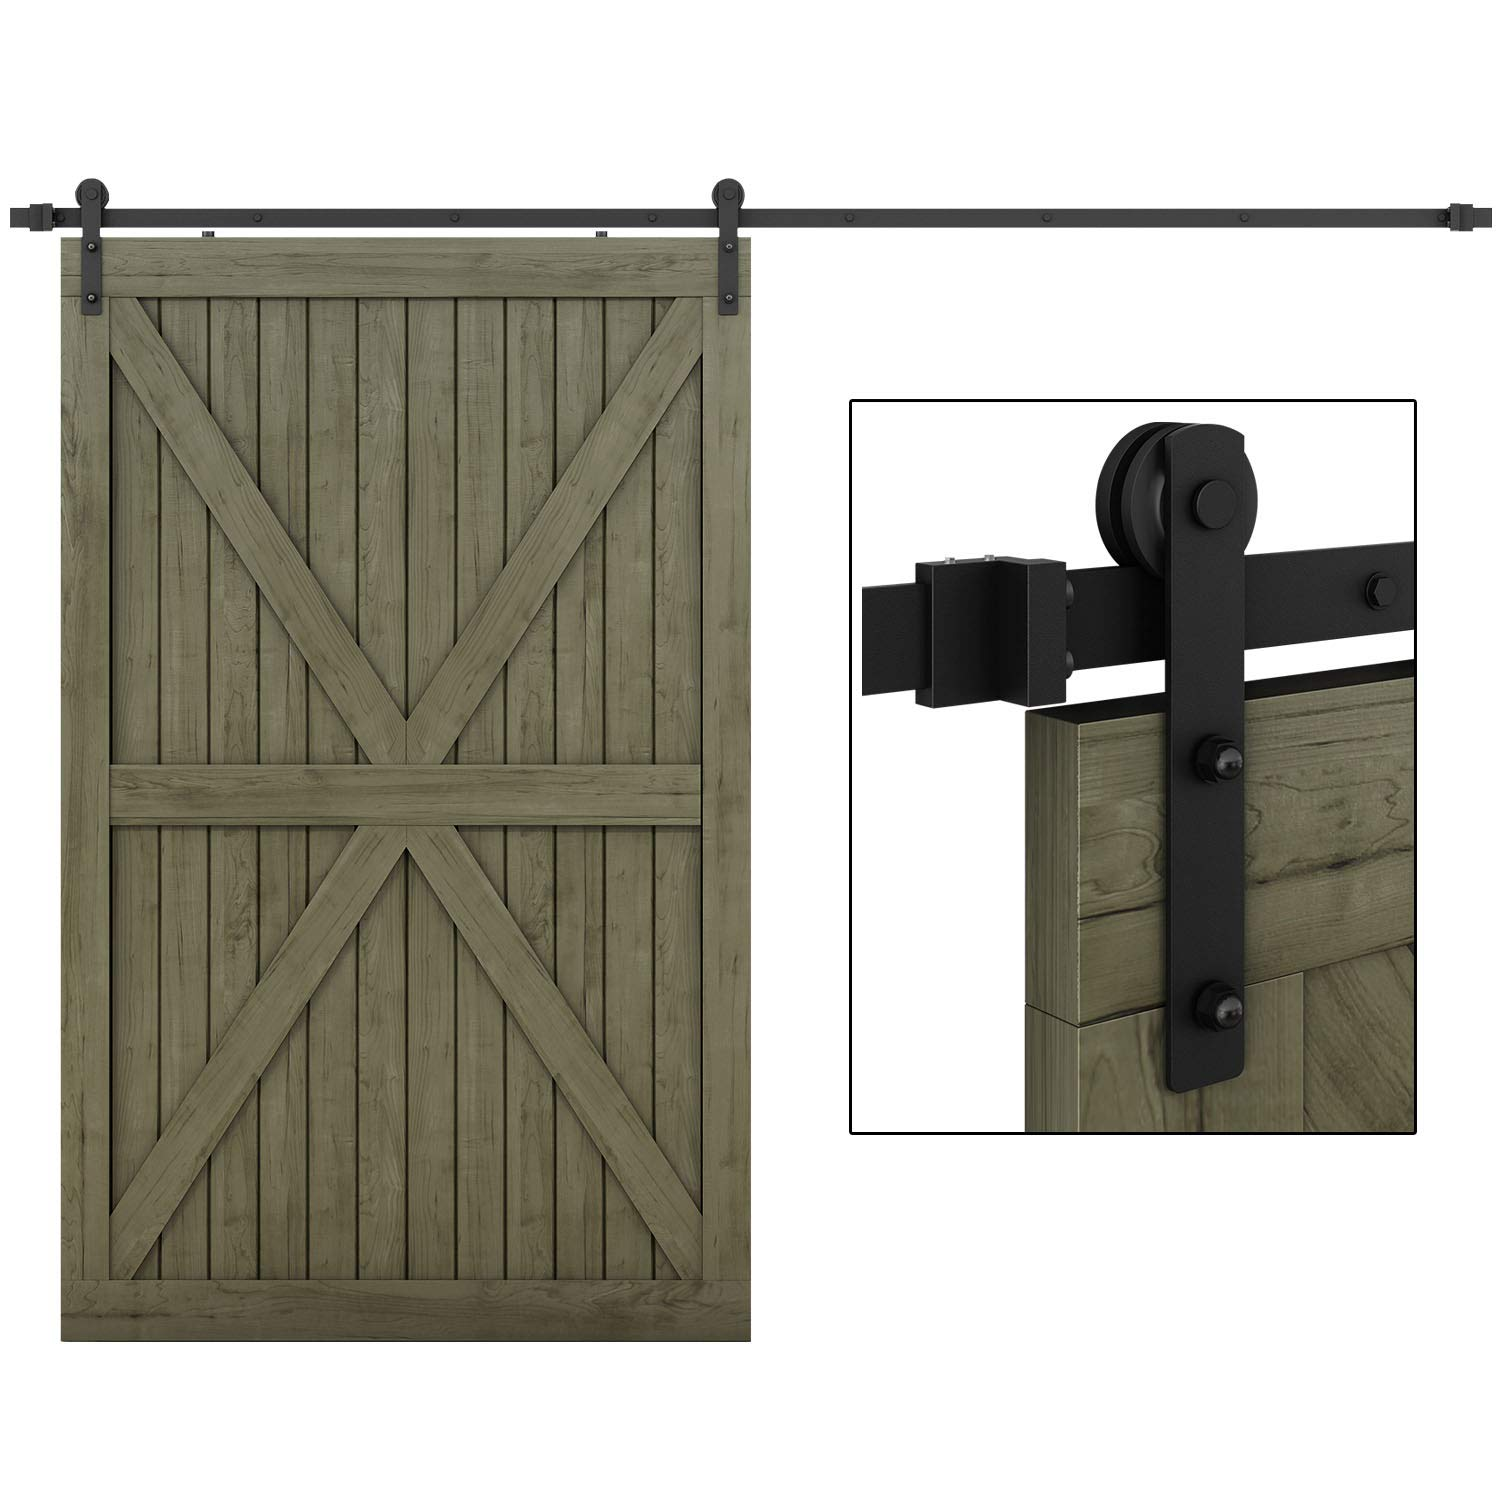 EaseLife 10 FT Heavy Duty Sliding Barn Door Hardware Track Kit - Ultra Hard Sturdy | Sliding Smooth Quiet | Easy Install | Fit up to 60'' Wide Door | 10 FT Track Single Door Kit